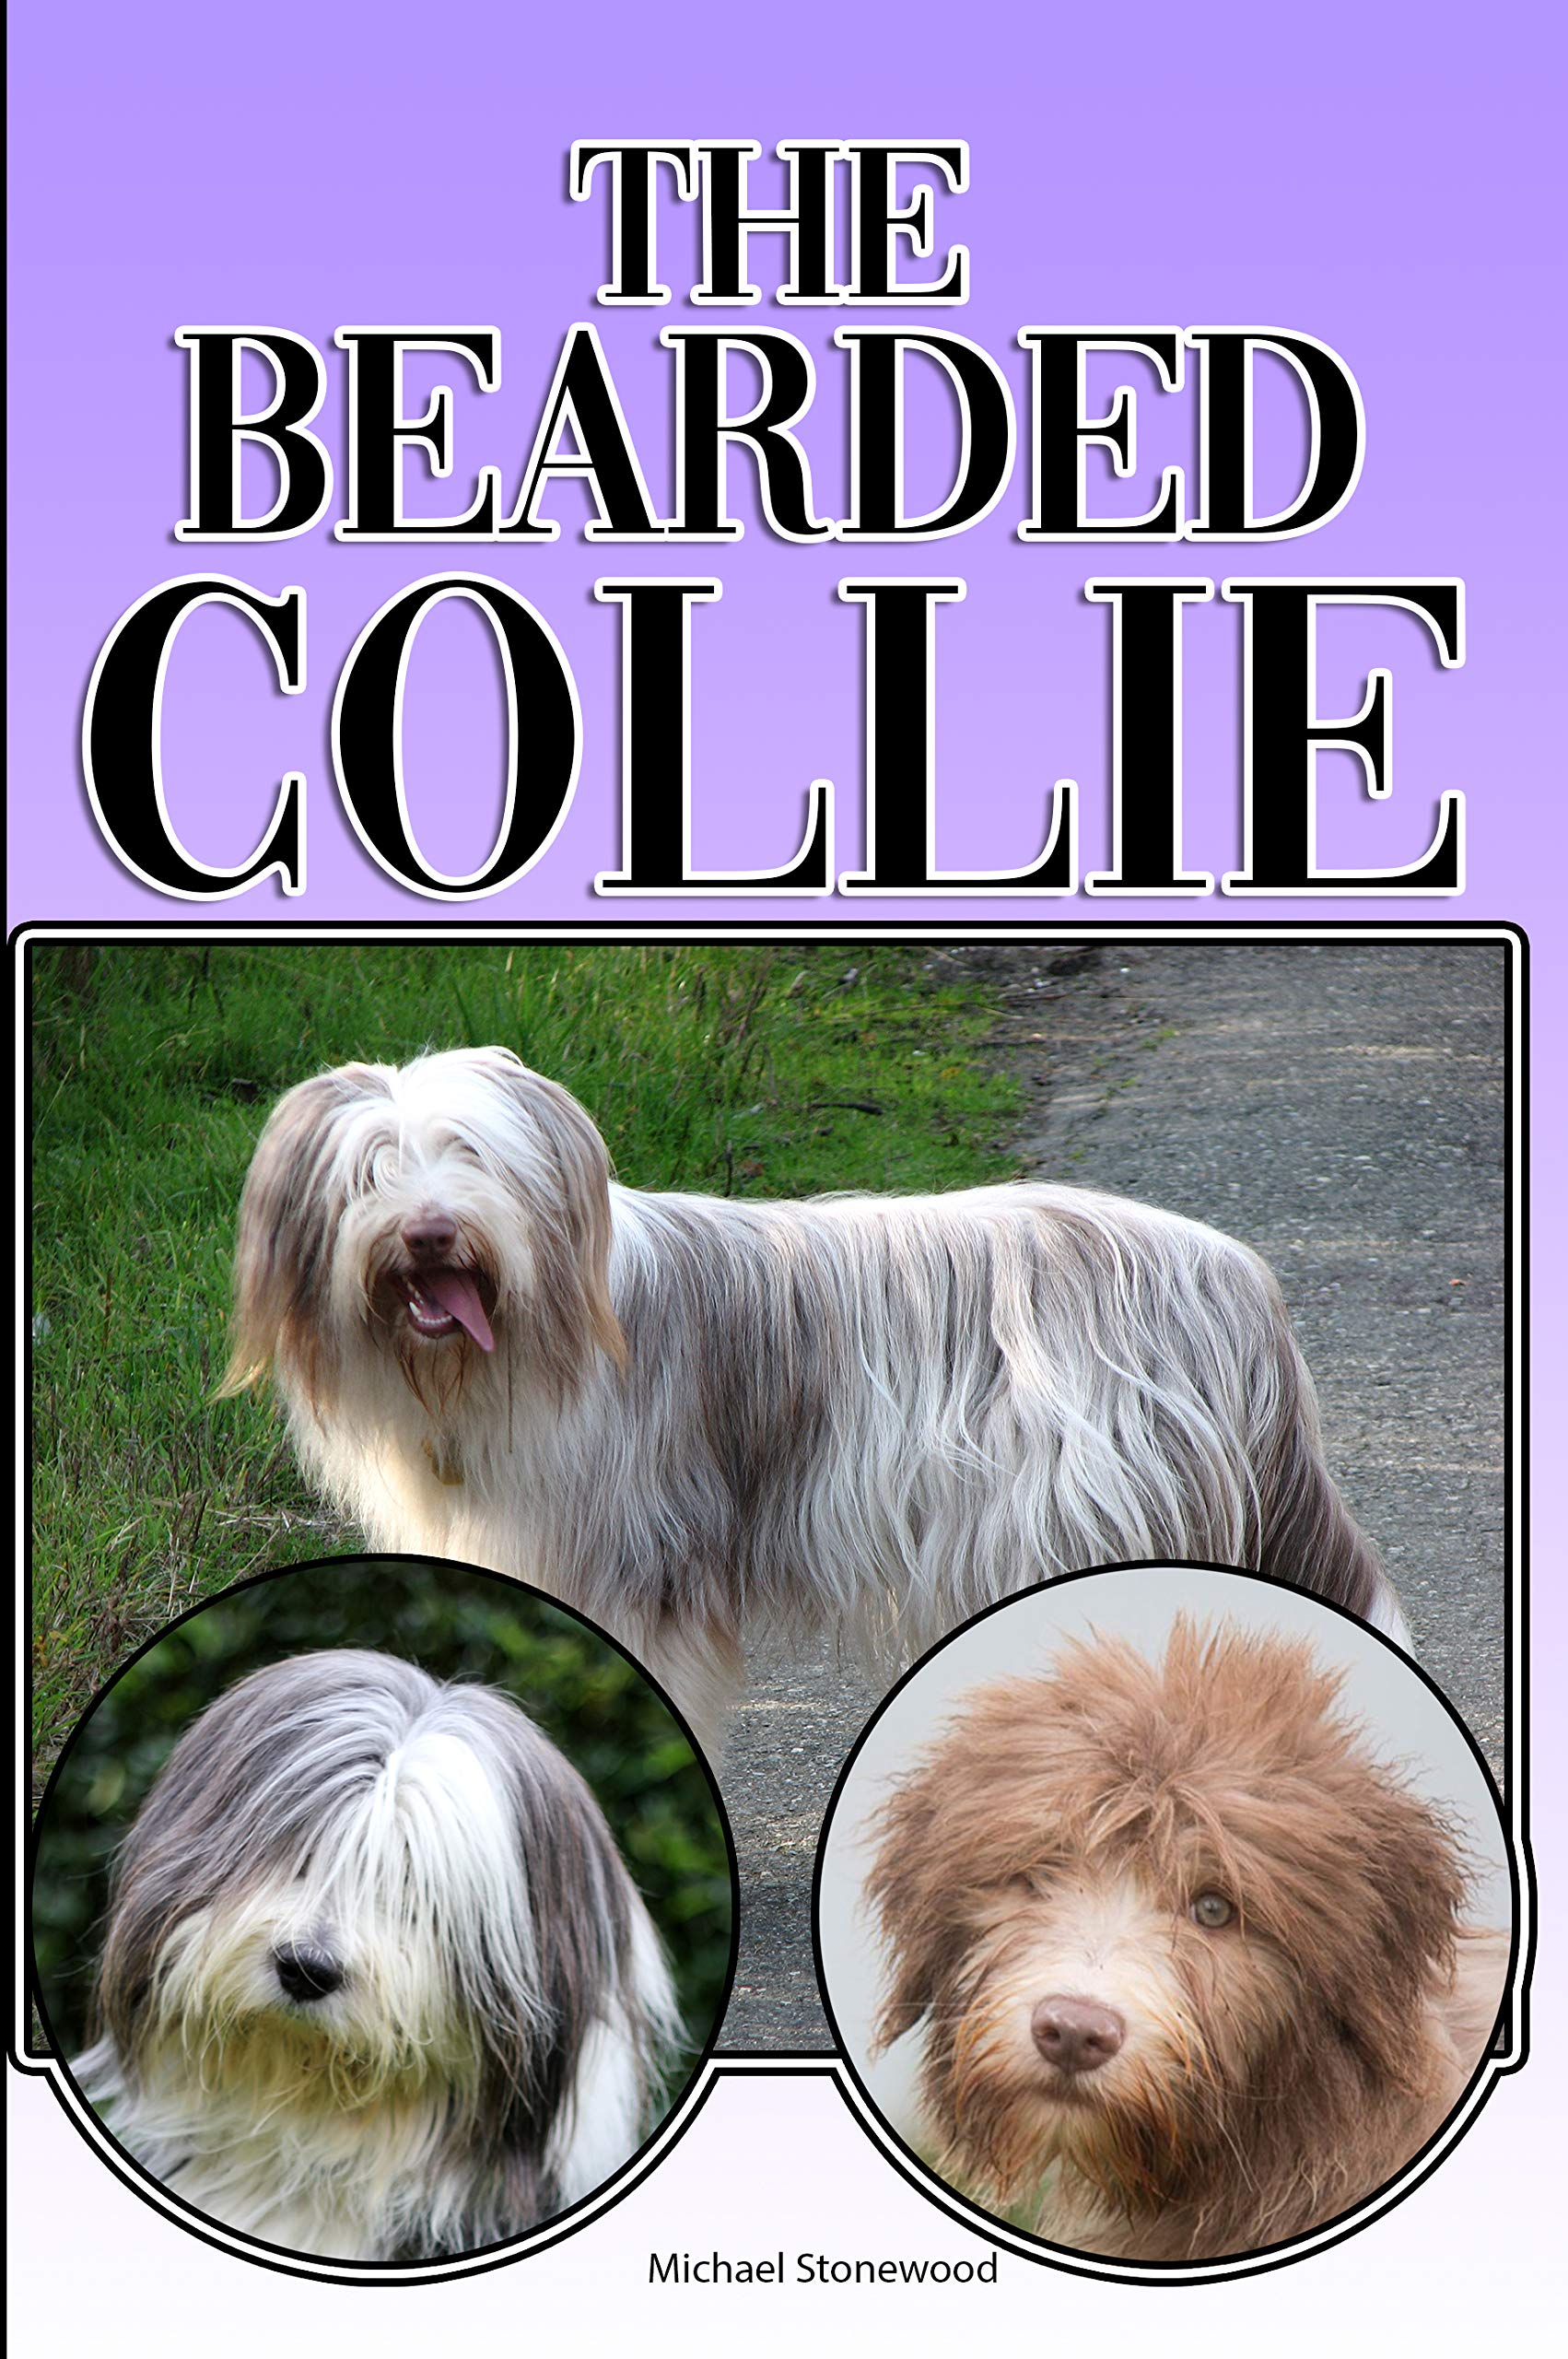 The Bearded Collie: A Complete and Comprehensive Beginners Guide to: Buying, Owning, Health, Grooming, Training…